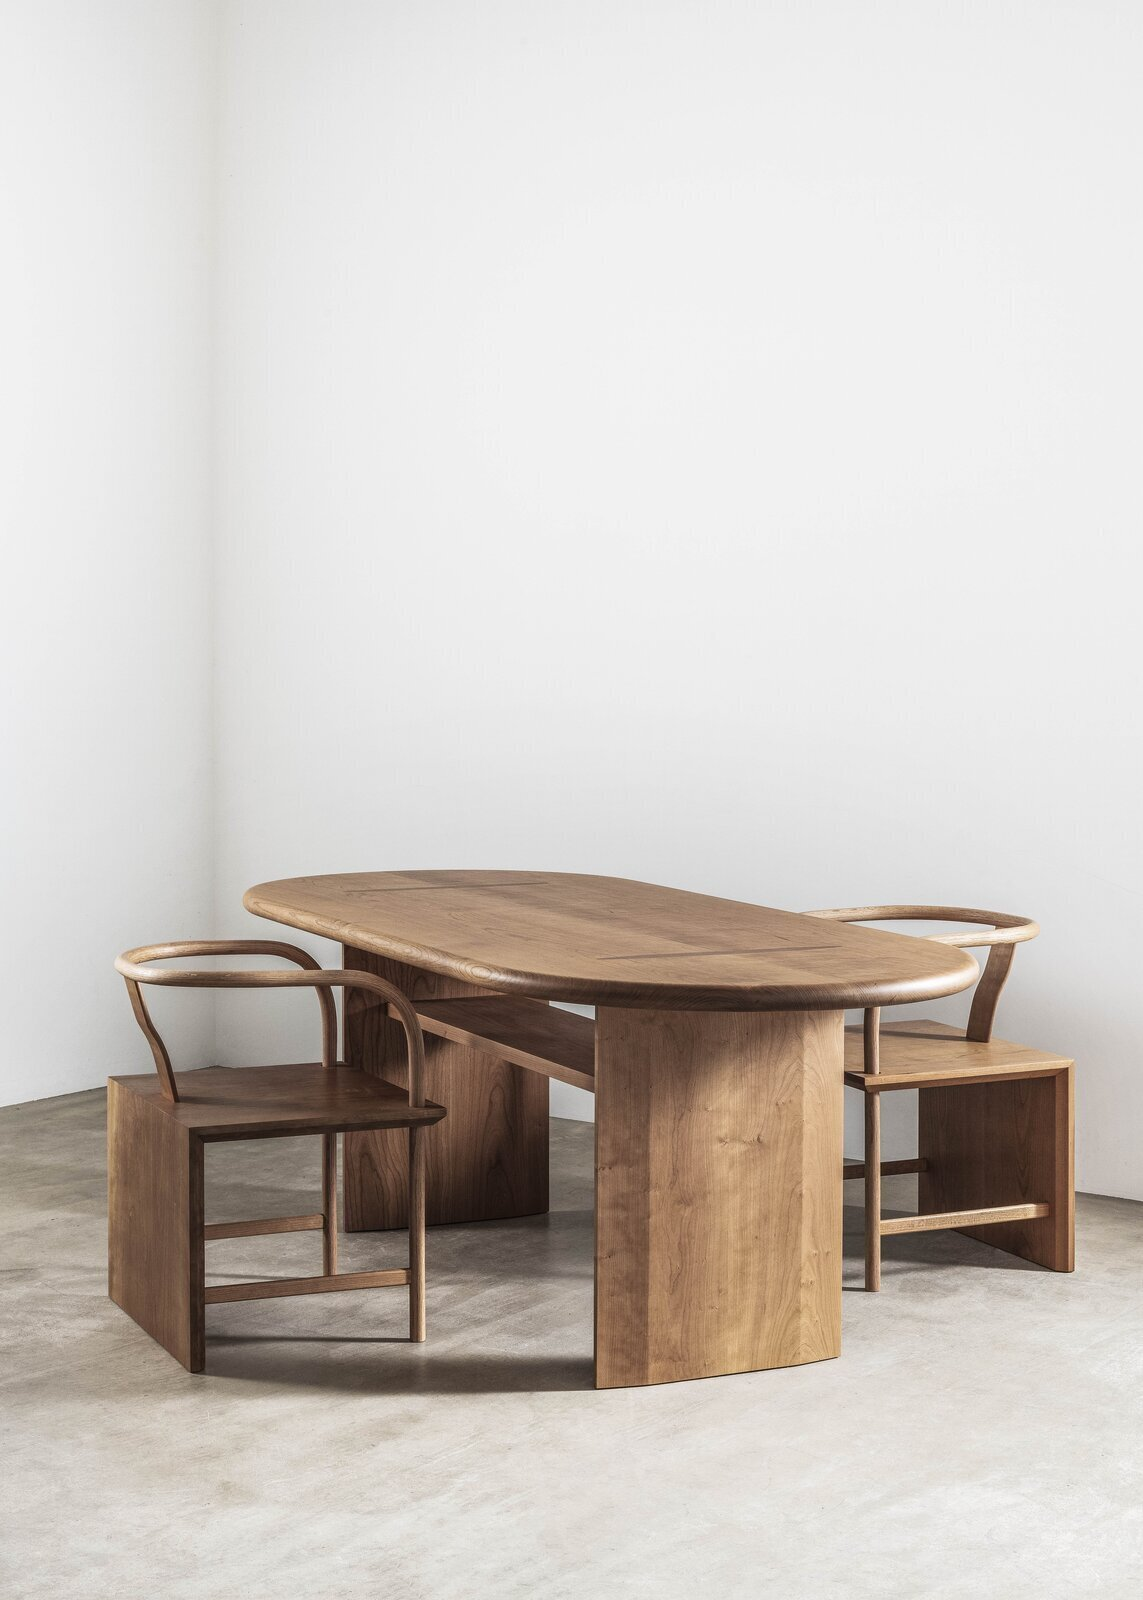 During the pandemic, the American Hardwood Export Council asked nine different design teams—Heatherwick Studio and Studio Swine among them—to create tables and seating that captured their work-from-home needs and desires. Then, they were paired with craftspeople at Benchmark Furniture, whom they only communicated with virtually, to bring these designs to life by hand in their Berkshire, England, workshop. This furniture, all crafted from a choice of red oak, maple, or cherry, is now on display in Connected (through October 11) at the Design Museum in London.  Photo 4 of 17 in 16 Essential Design Events to Catch This Fall